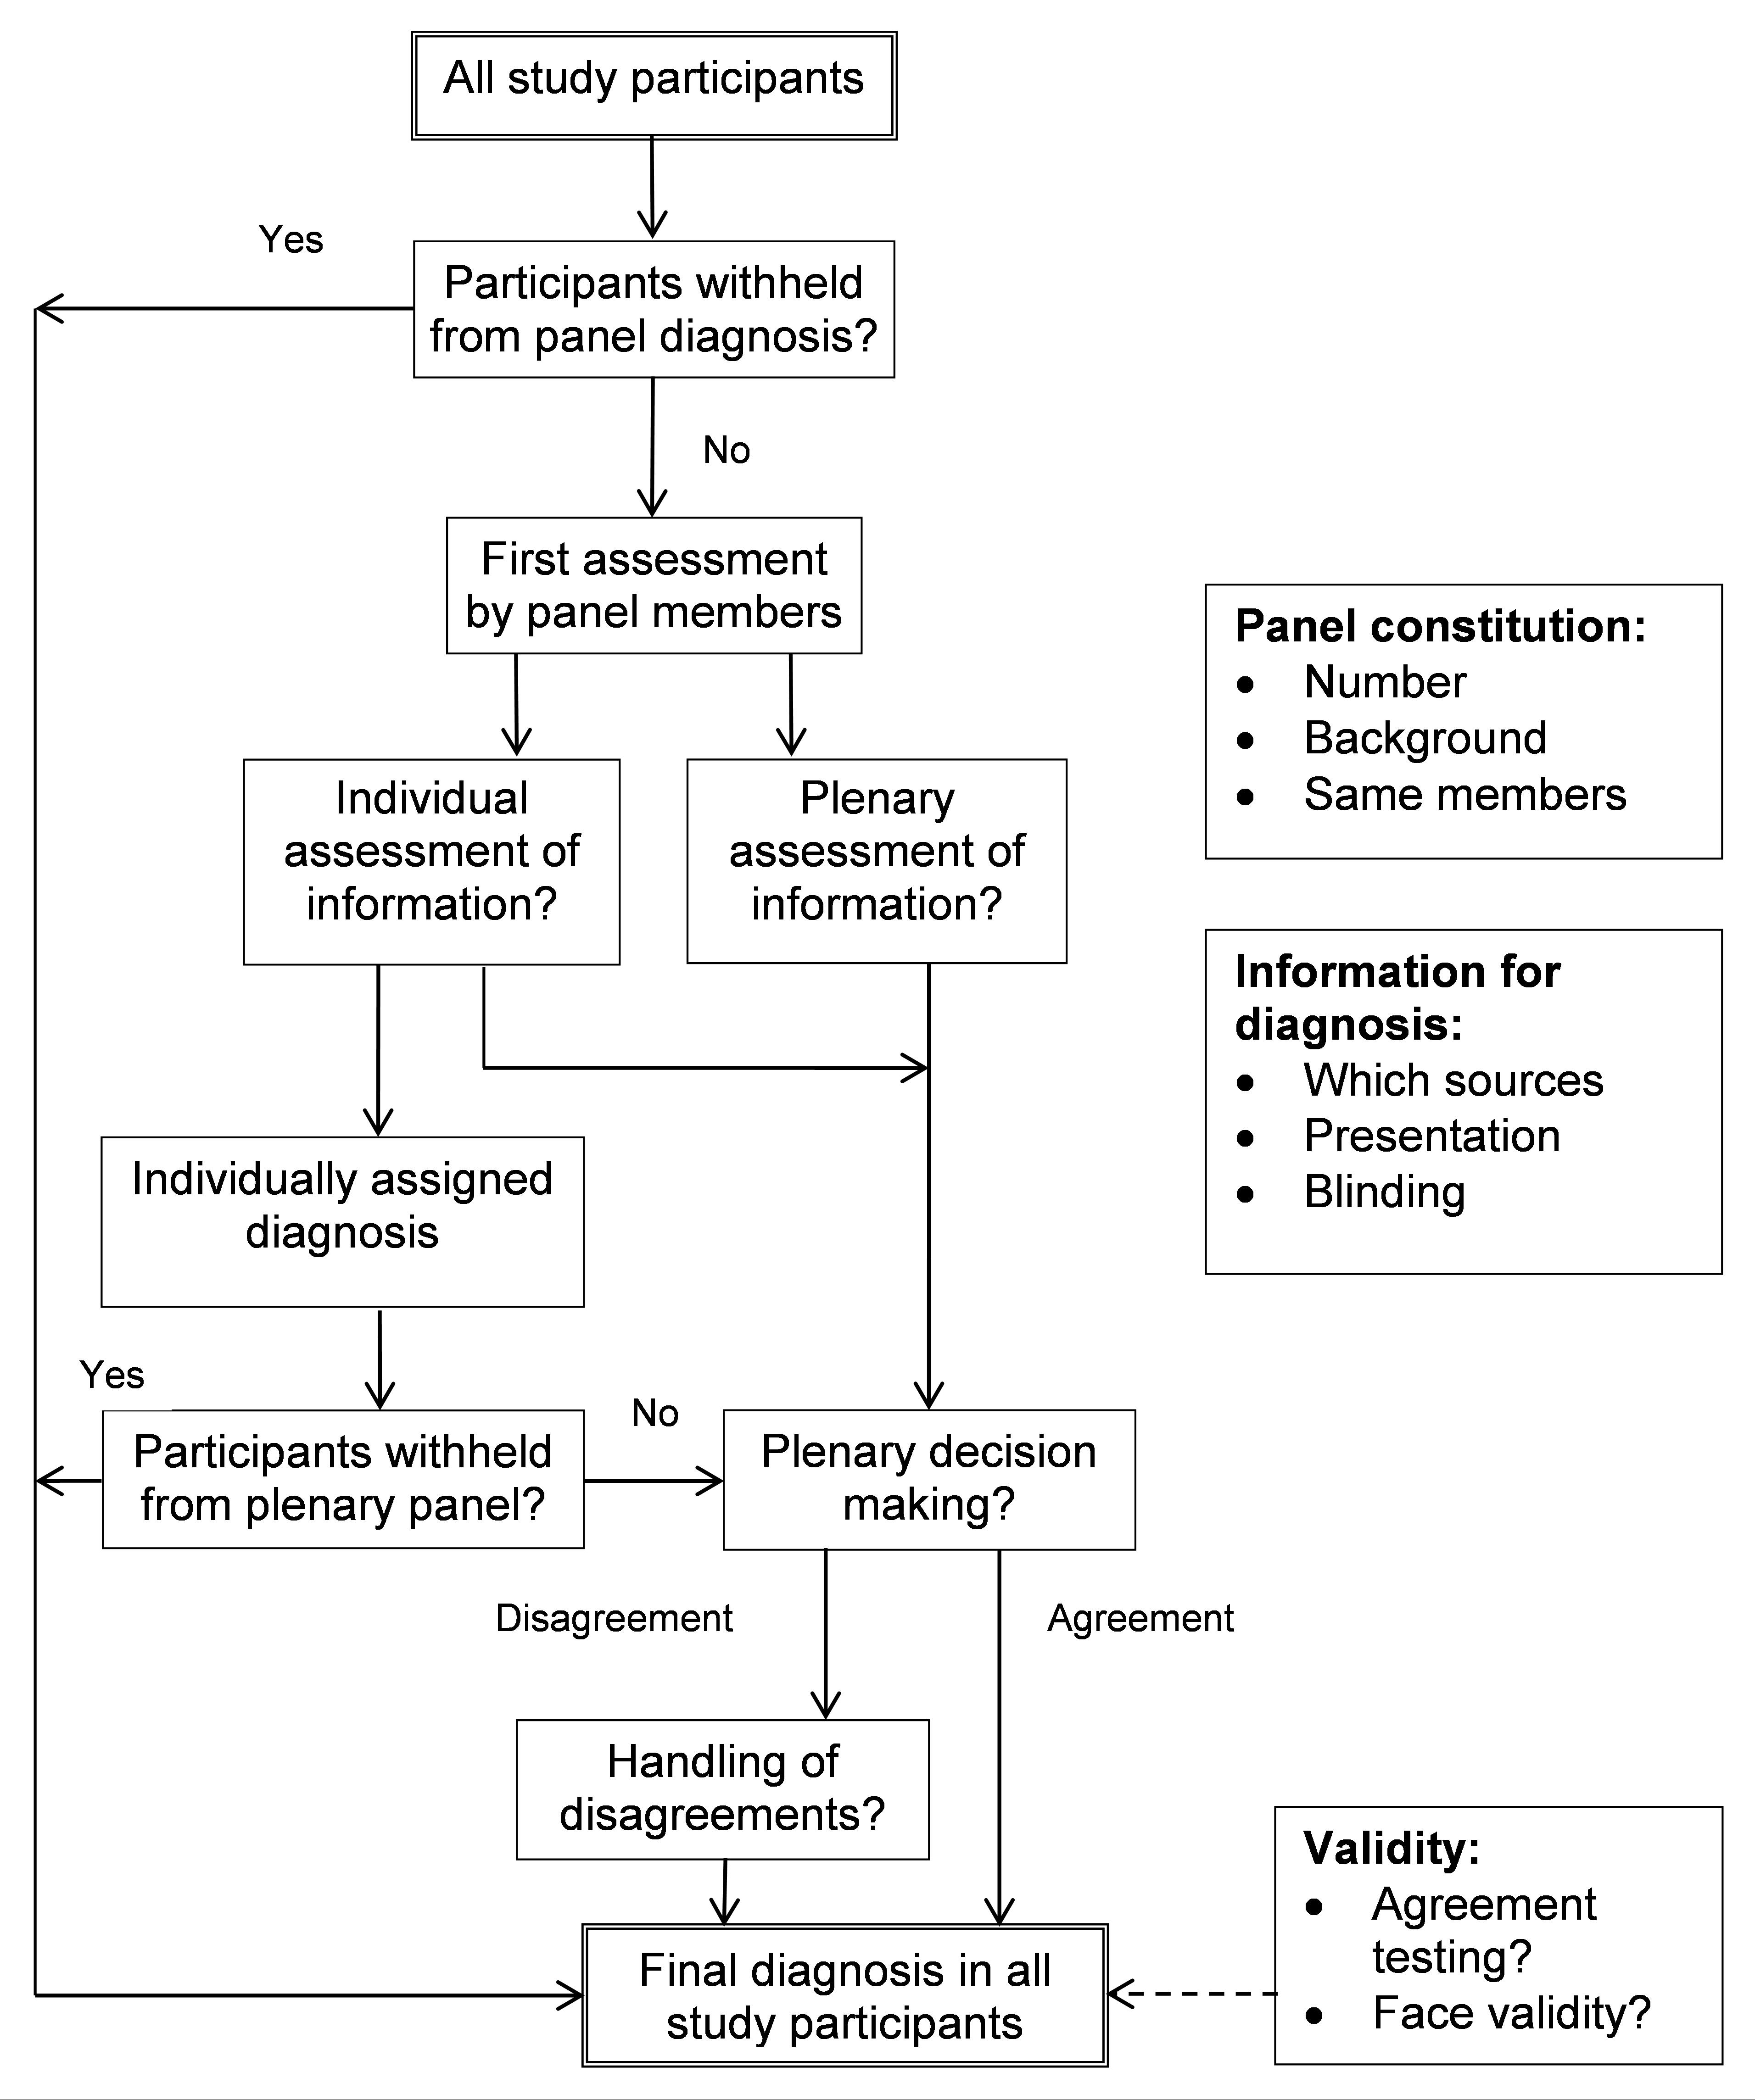 Flowchart of options to consider when planning and conducting panel diagnosis.